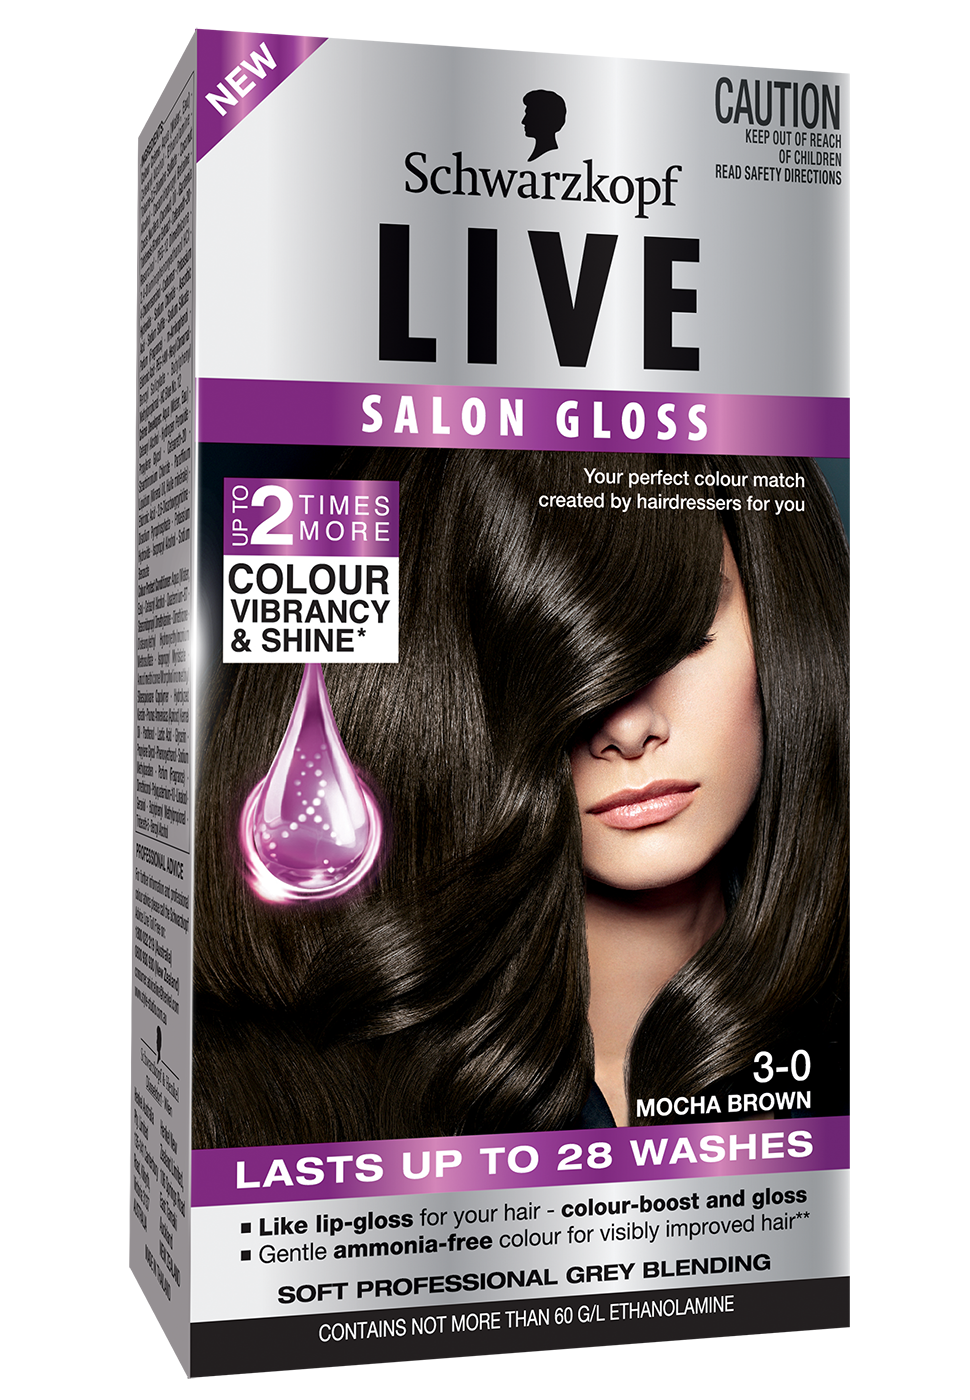 299LIVESalonGloss3DLF30MochaBrown